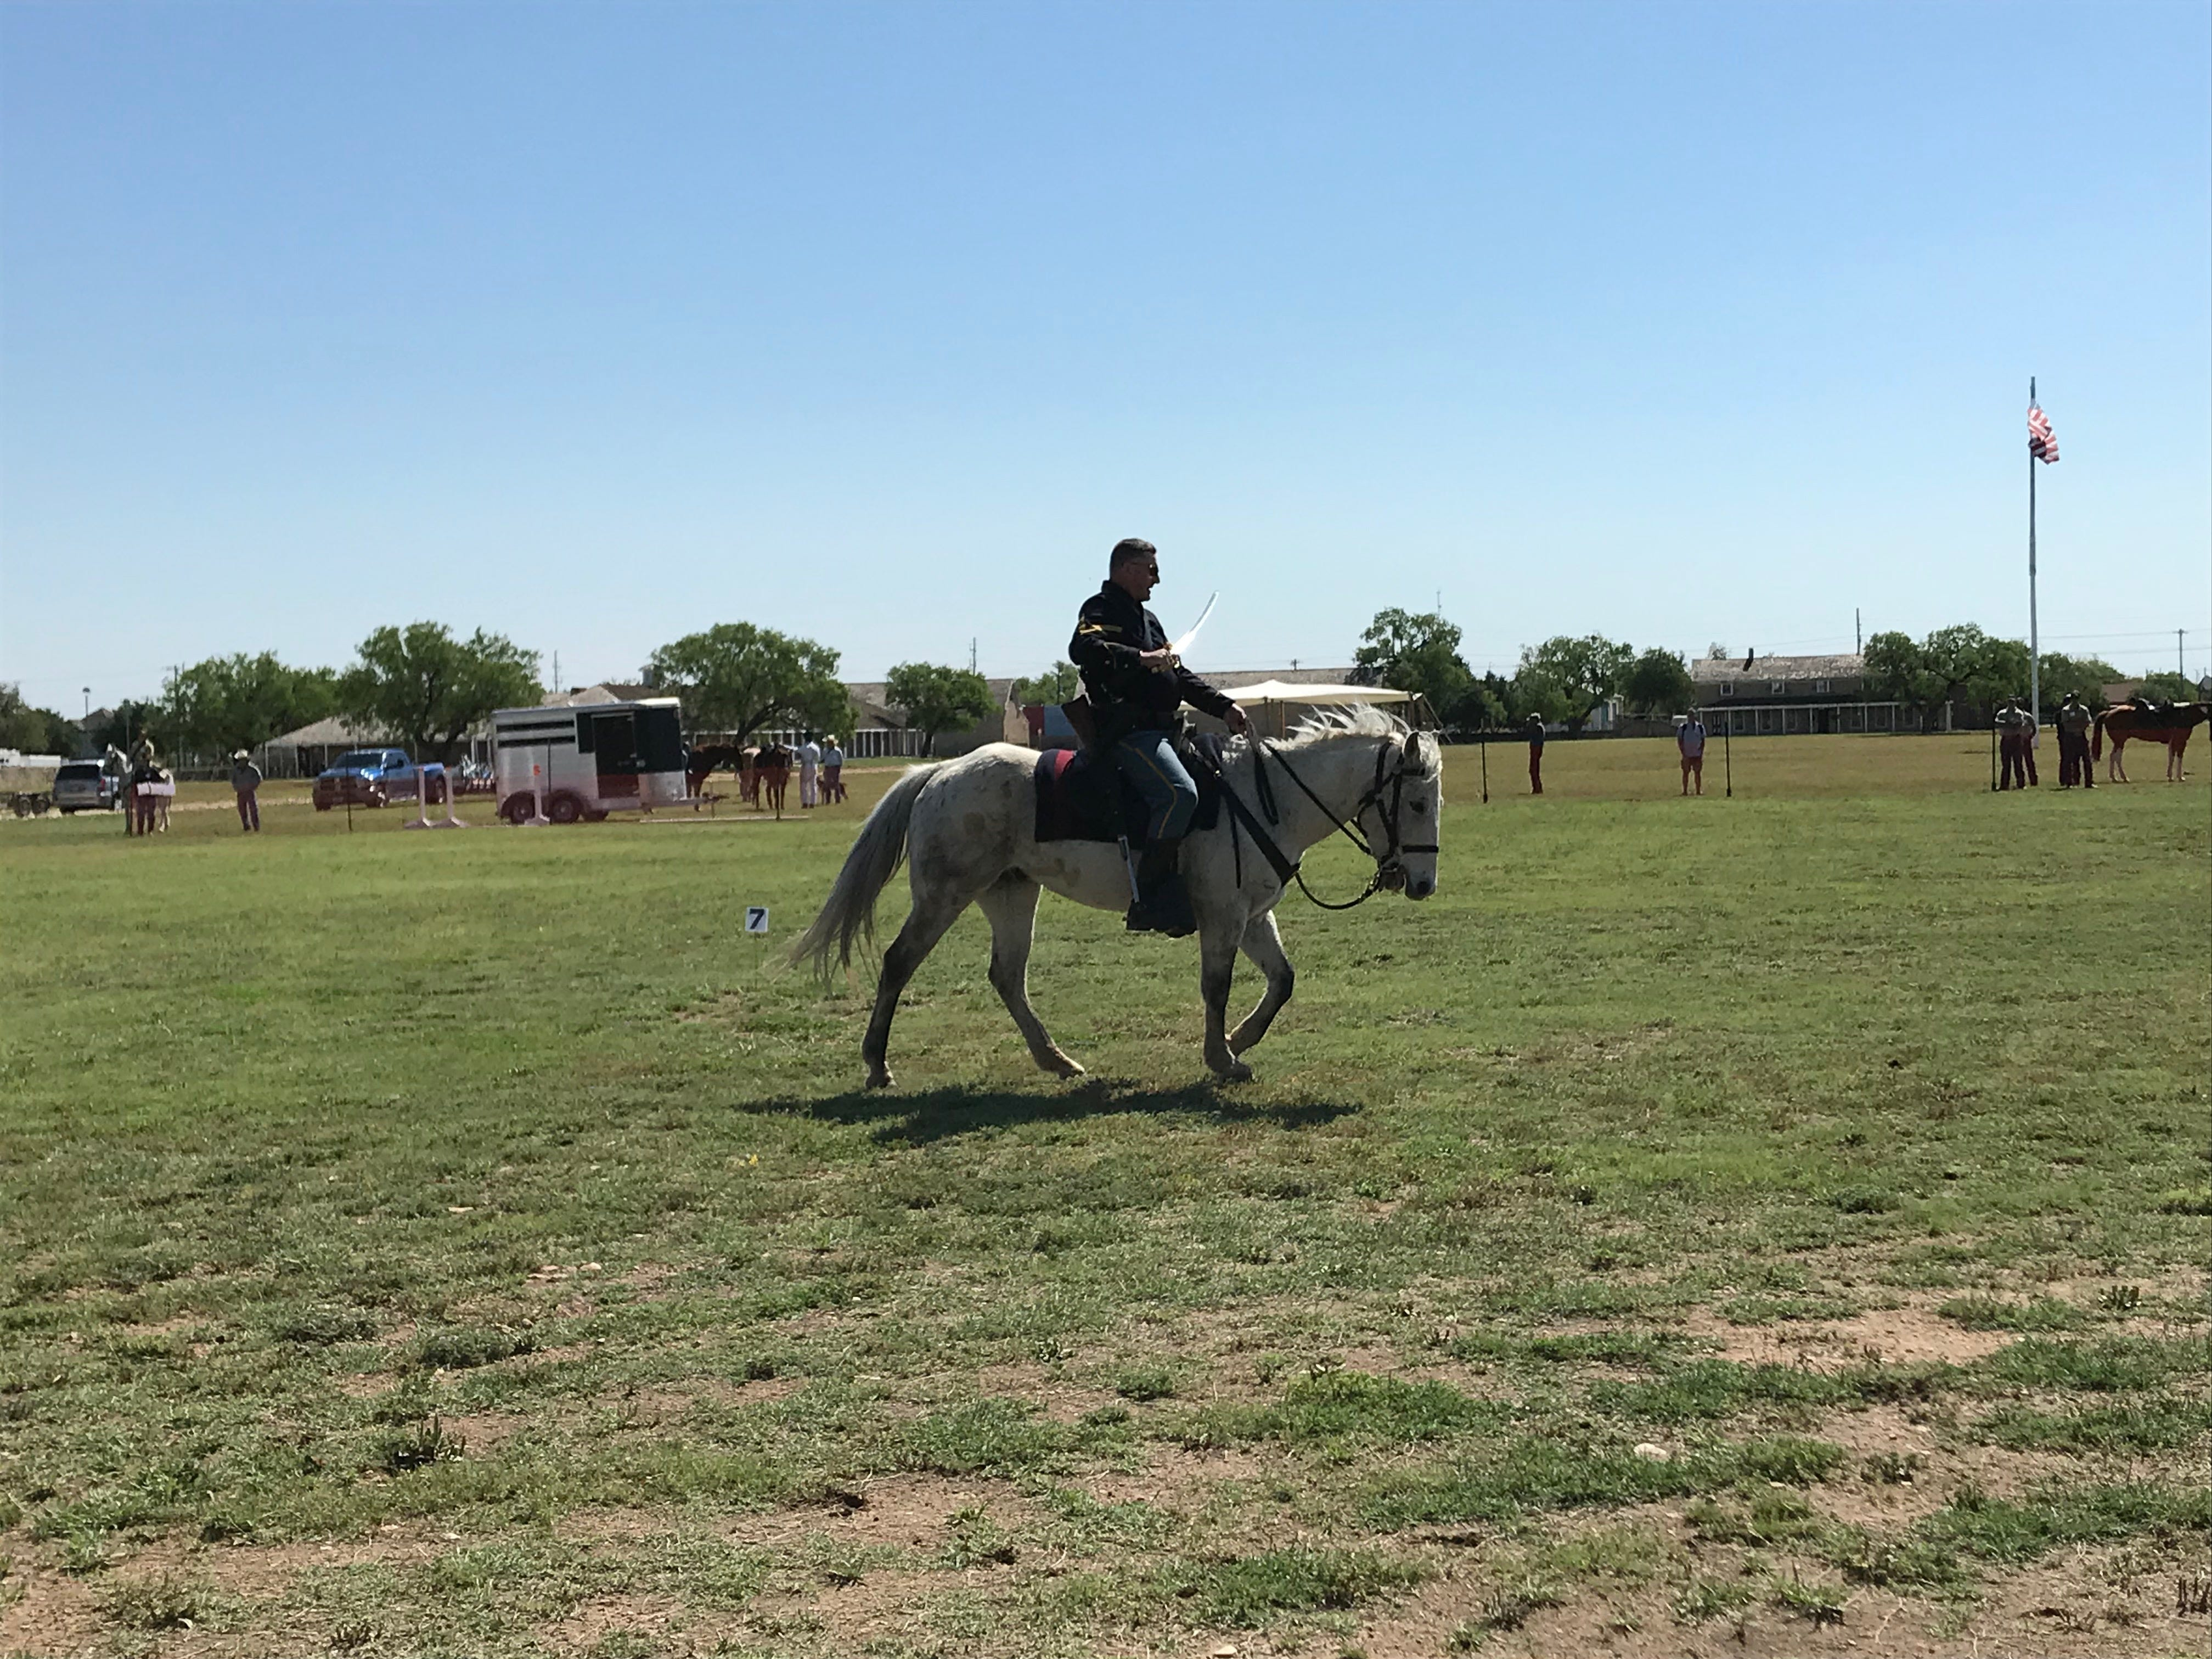 This rider flashes a saber at the Regional Cavalry Competition at Fort Concho, 630 S. Oakes St. on Friday, April 26, 2019.